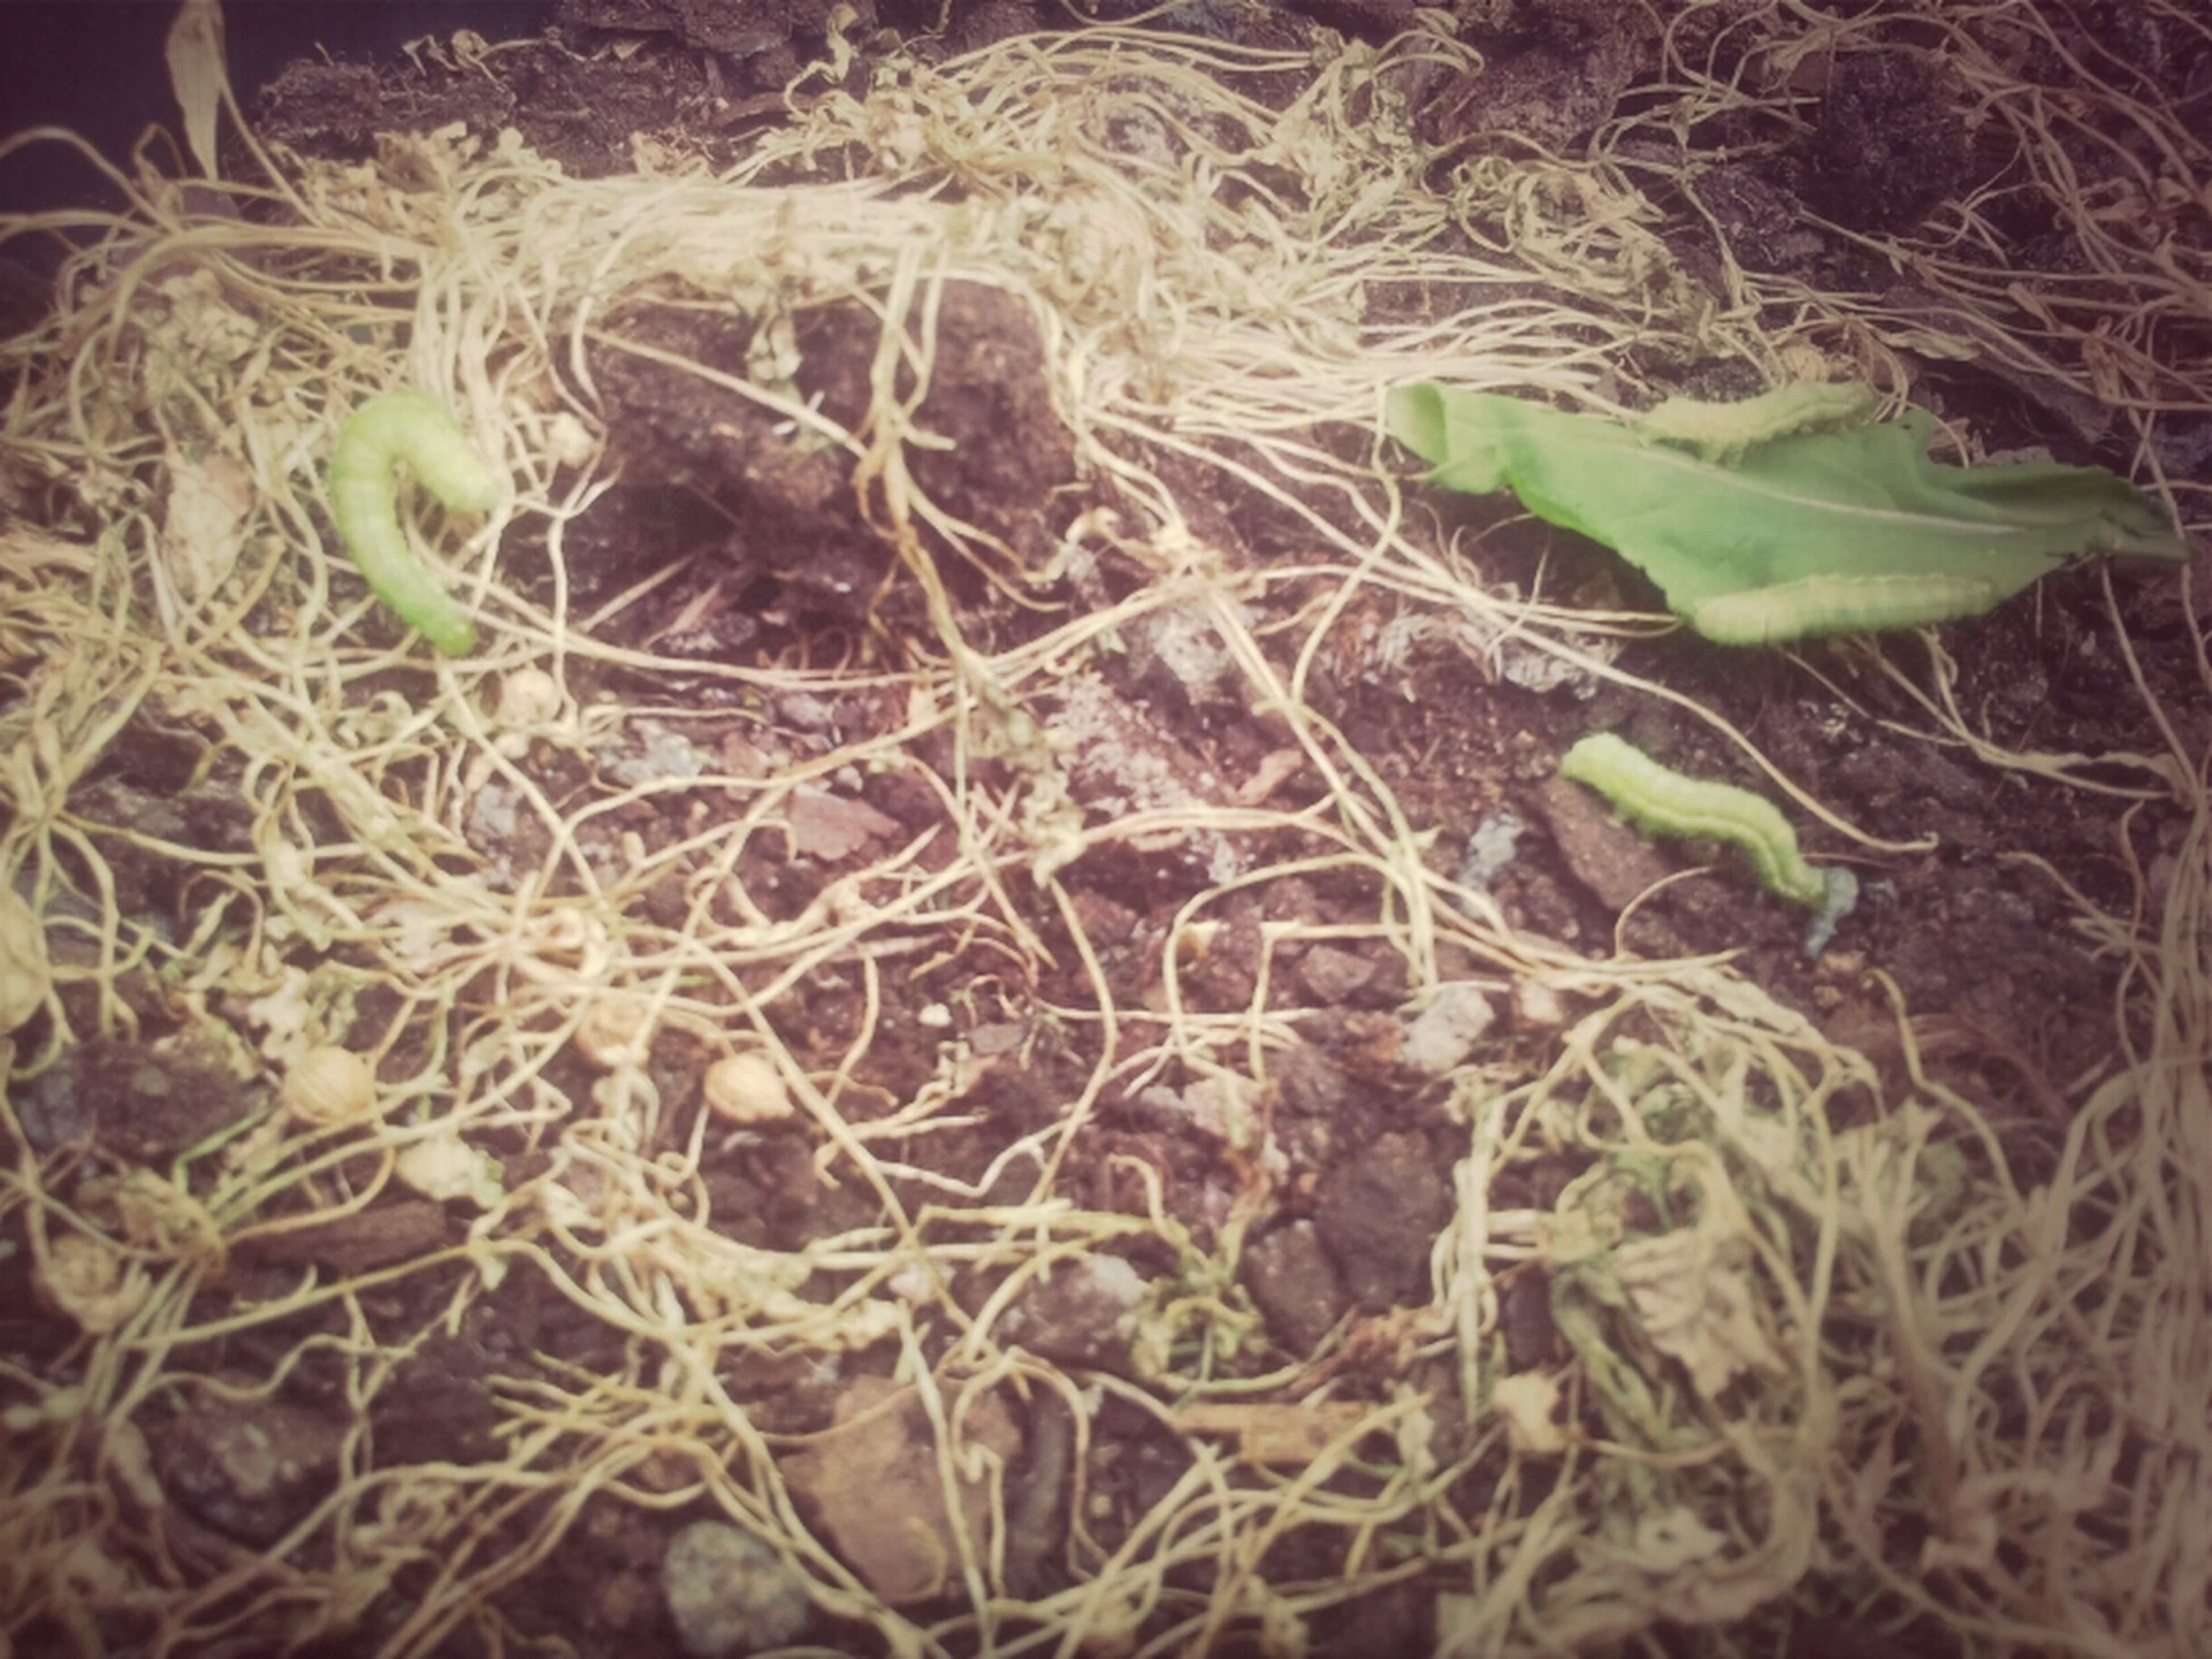 leaf, plant, growth, dry, field, nature, close-up, agriculture, high angle view, no people, outdoors, day, growing, dirt, green color, sunlight, tranquility, grass, farm, root